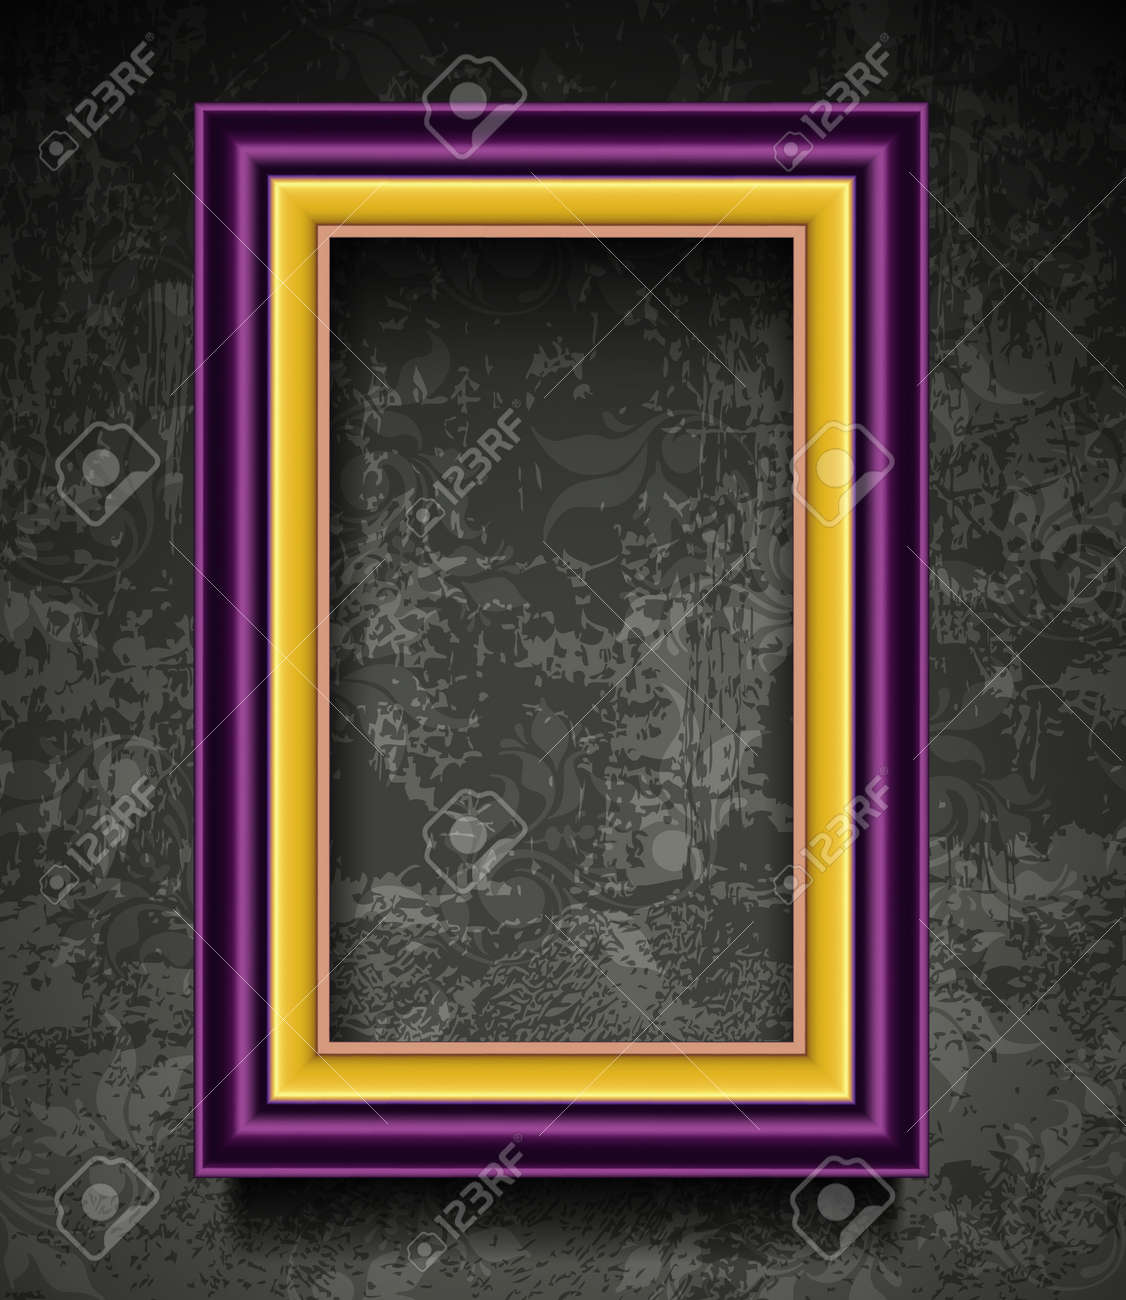 Fashion Picture Frame on Grunge Wall Stock Vector - 12486232